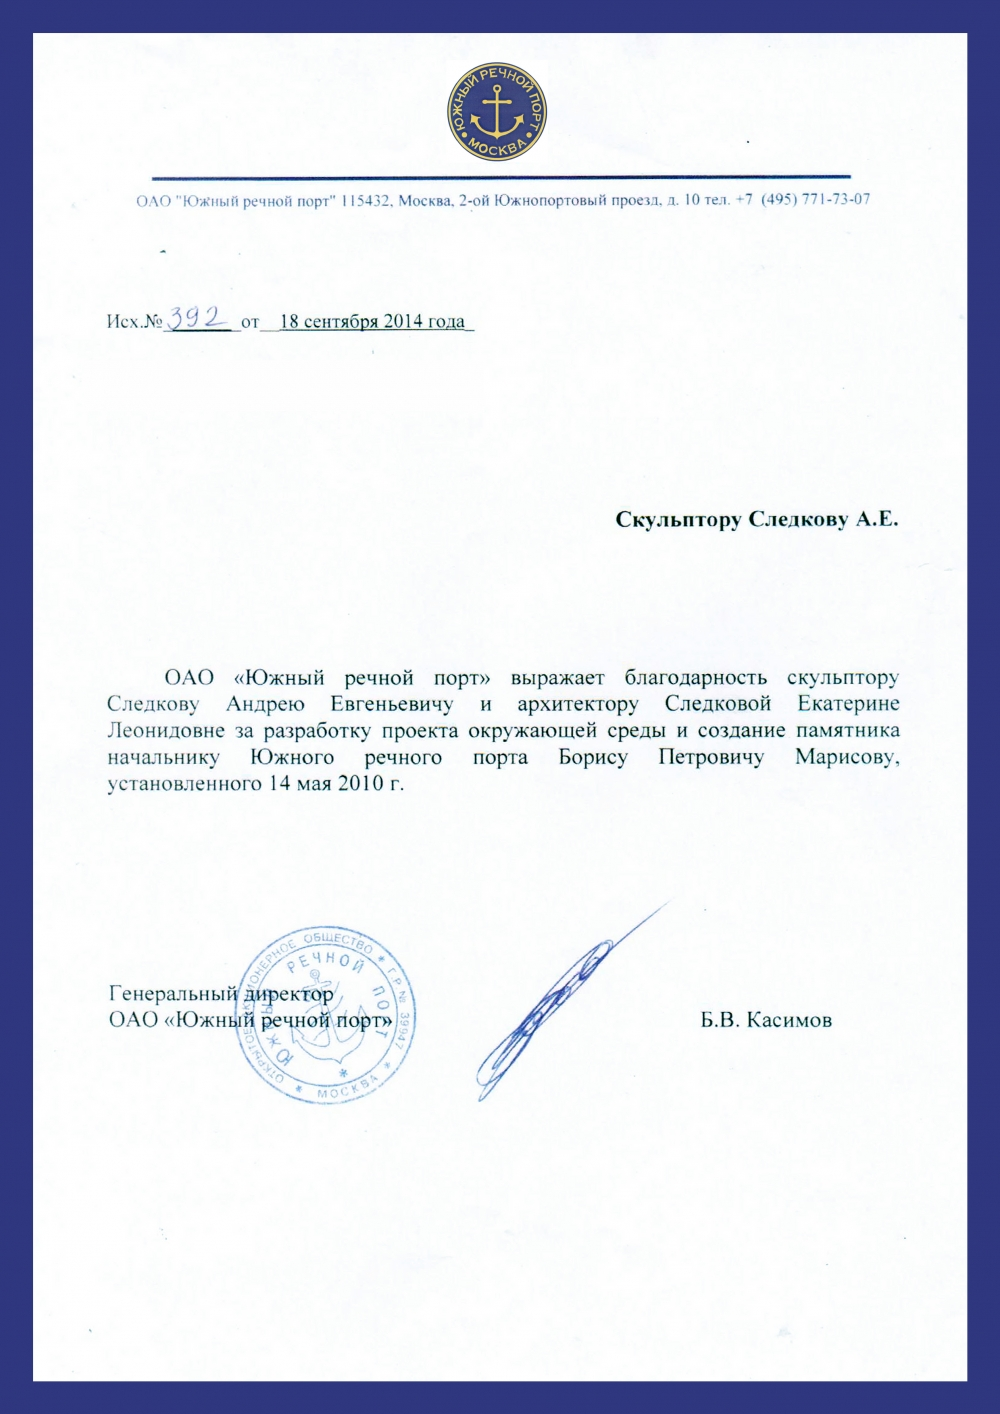 The letter of gratitude from the Moscow Southern River Port